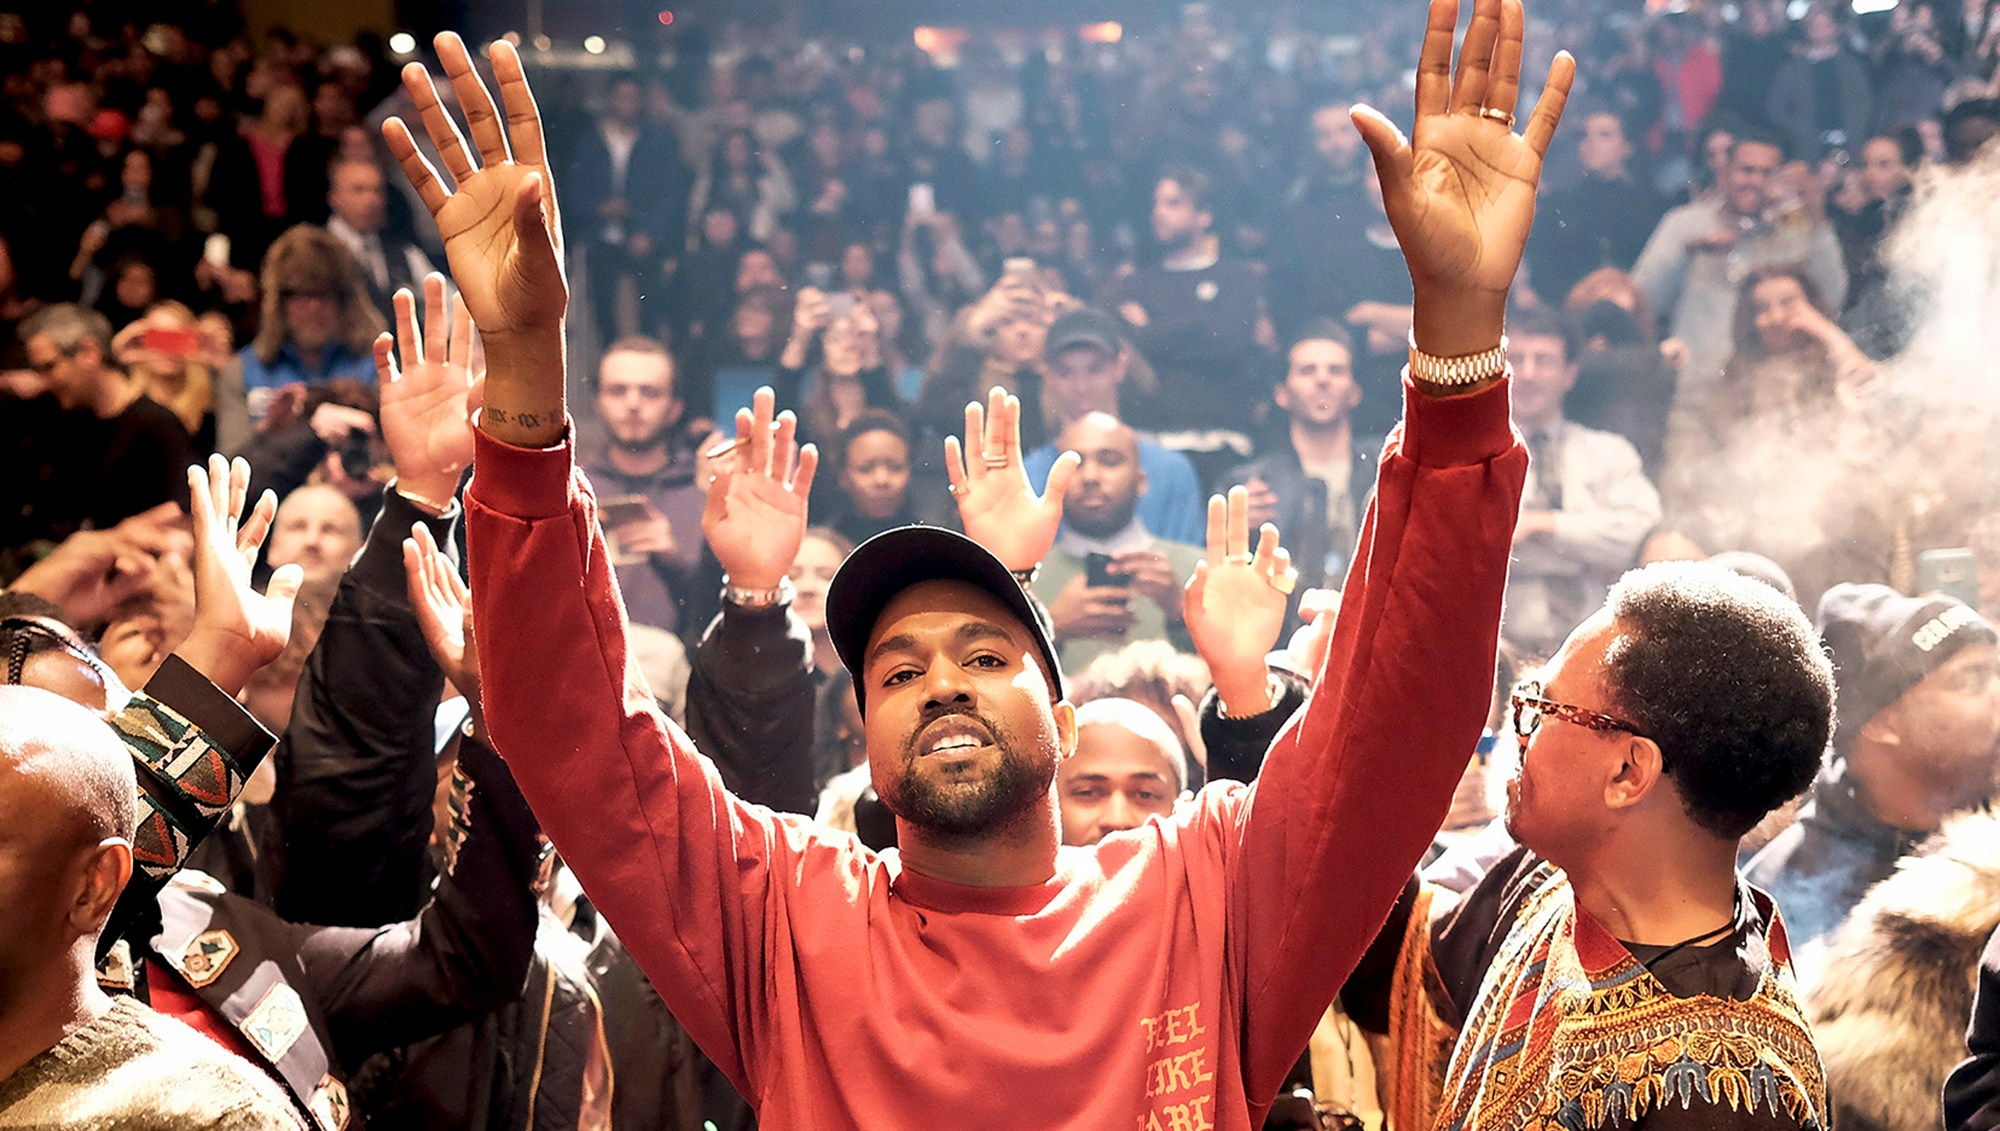 Kanye West Kanye West's Most Intriguing Quotes of All Time Gallery